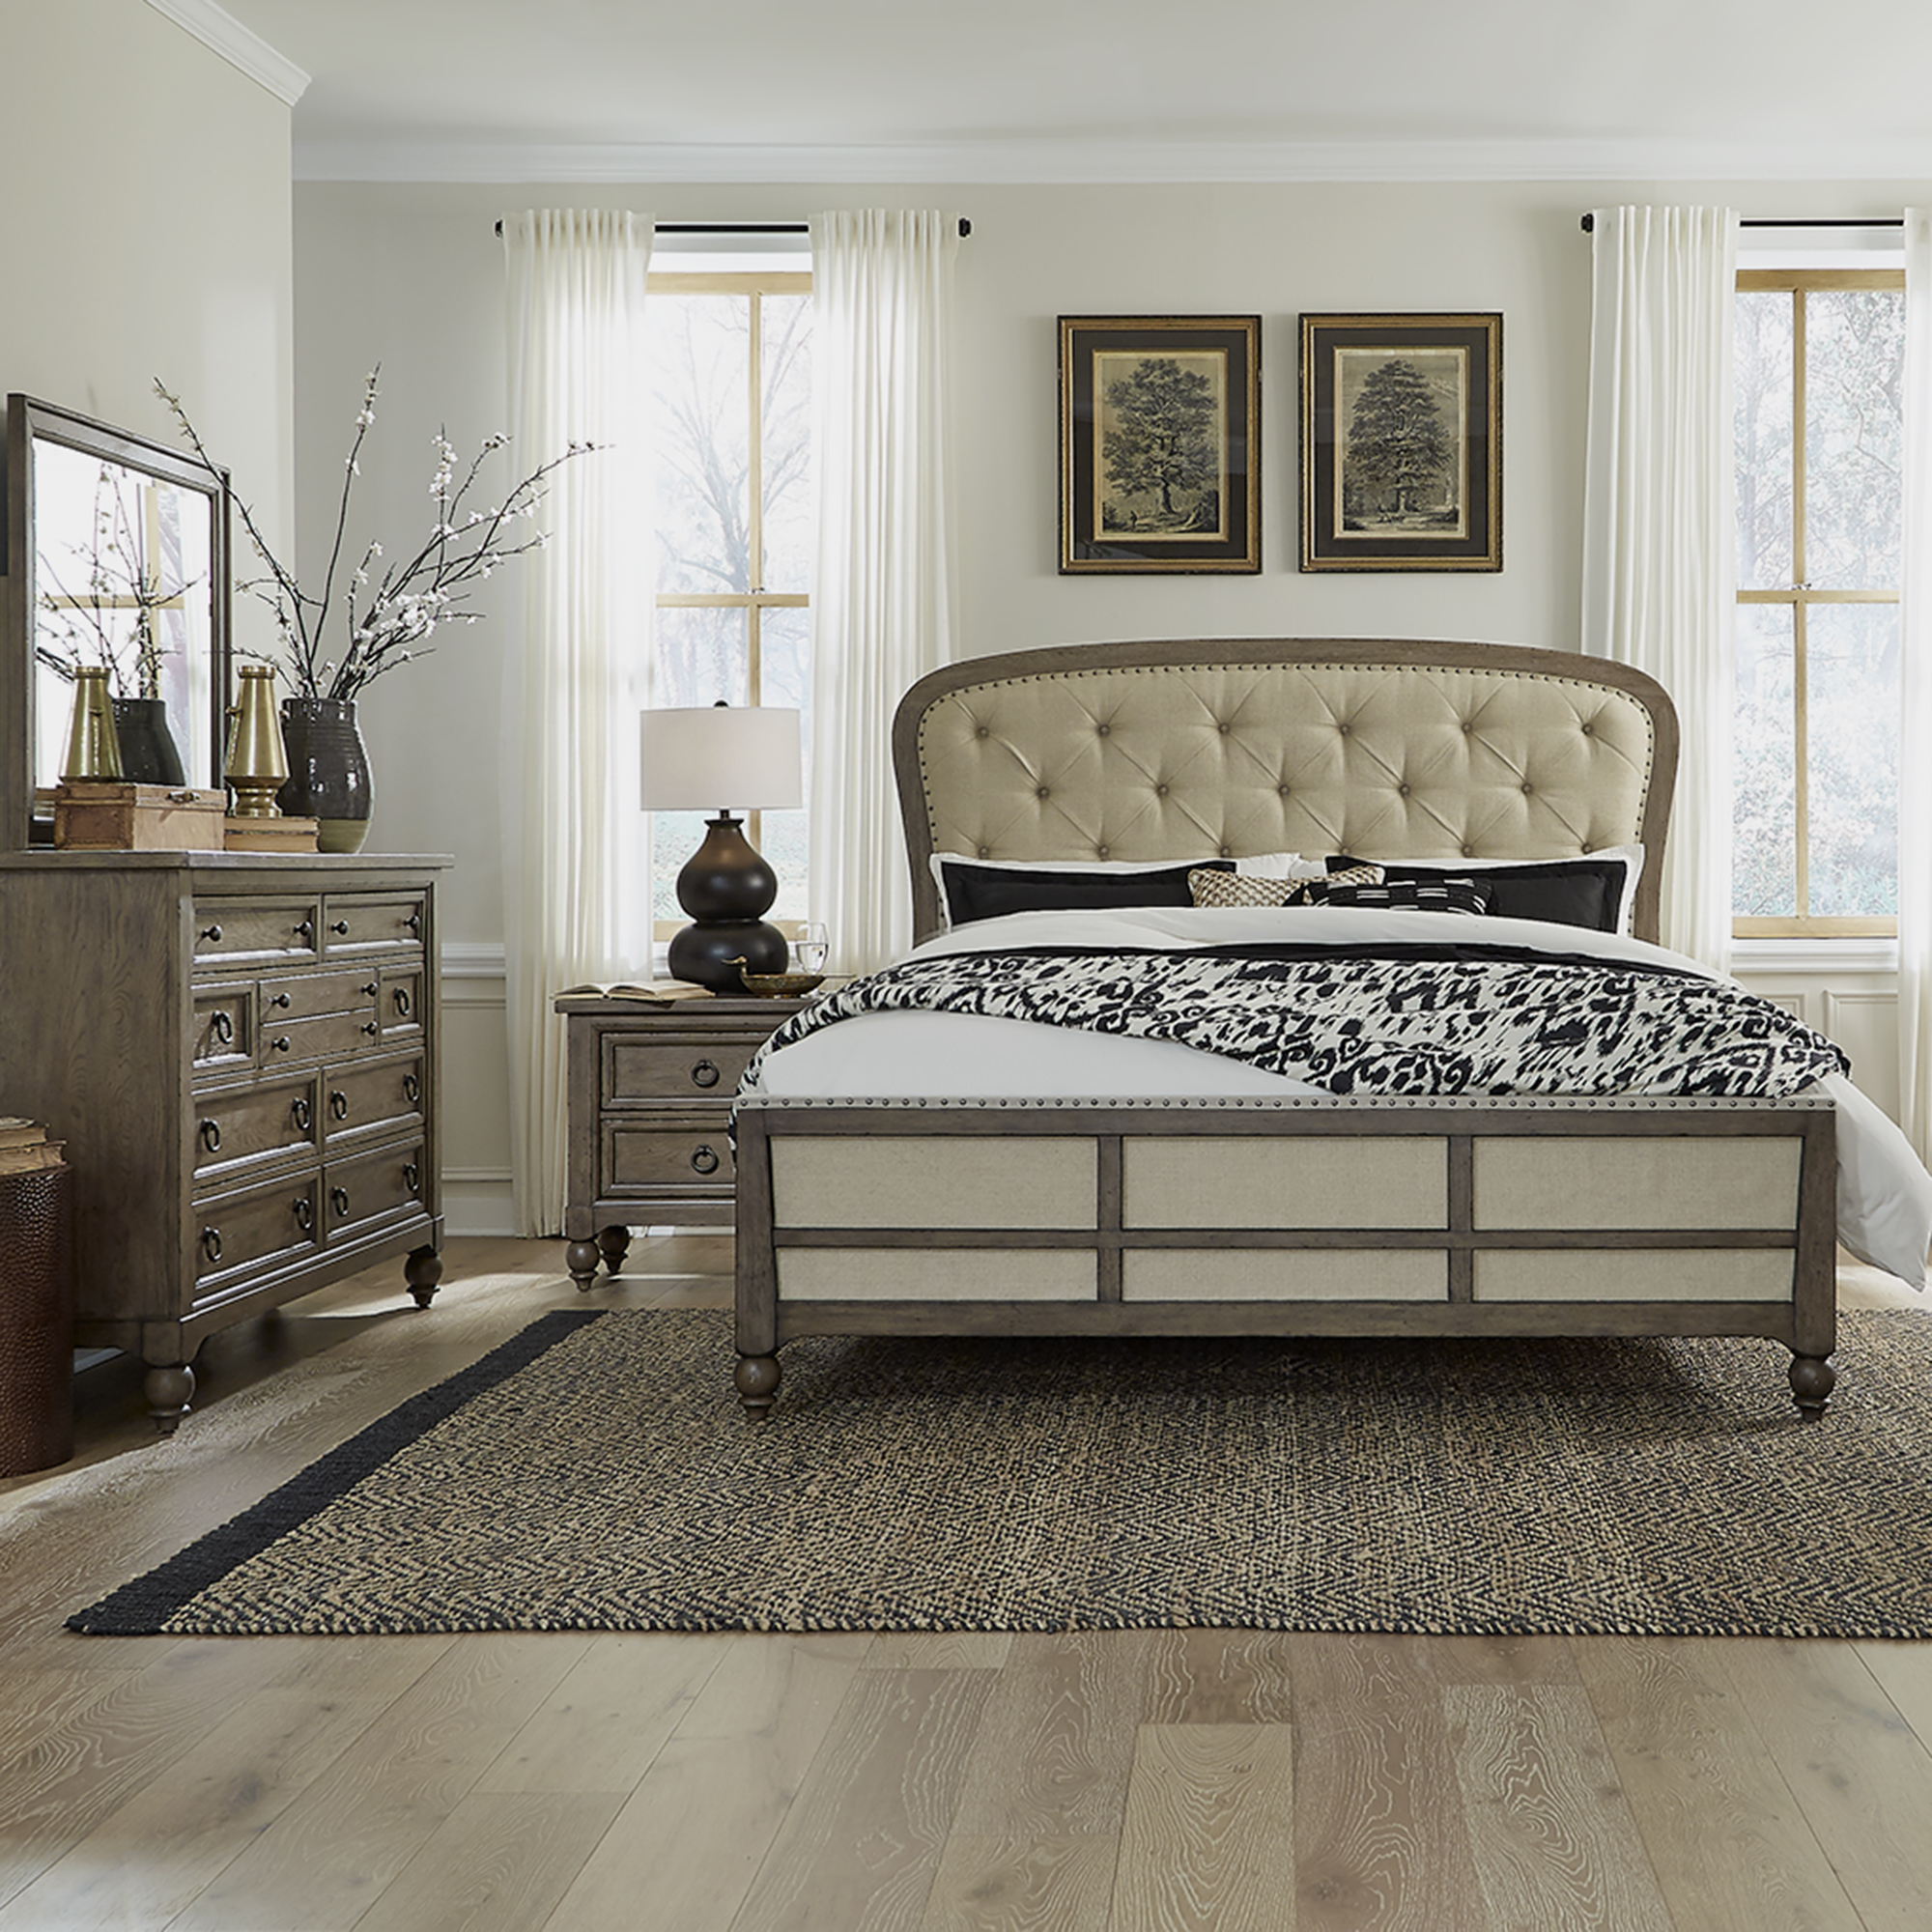 Americana Farmhouse Queen Shelter Bedroom Group by Liberty Furniture at Westrich Furniture & Appliances